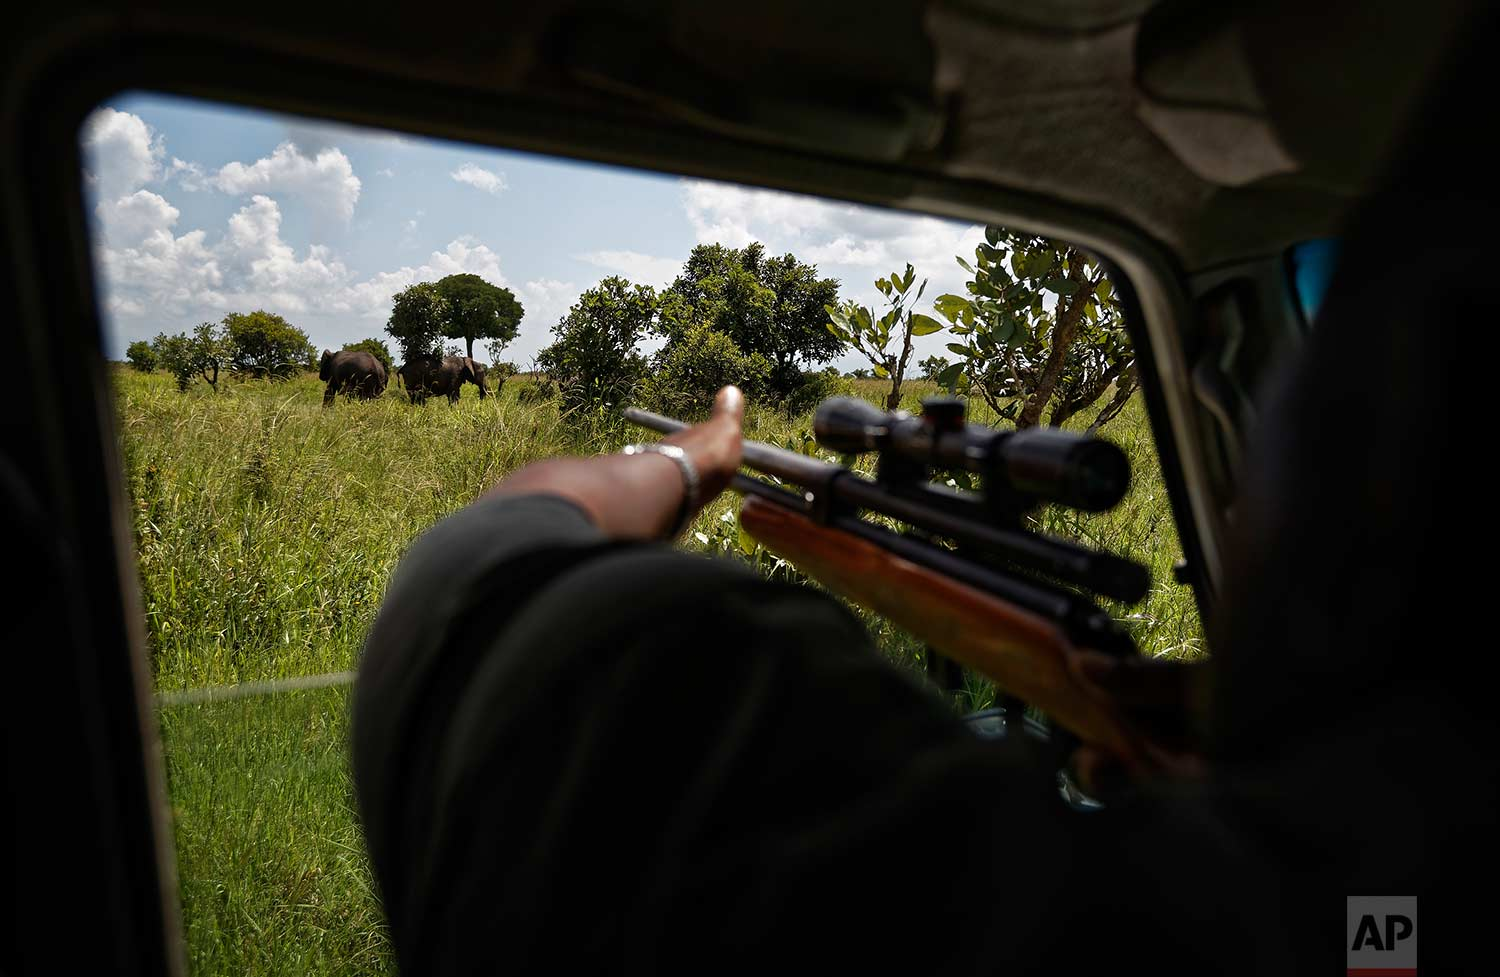 In this photo taken Friday, March 23, 2018, wildlife veterinarian Justin Shamancha prepares to shoot a tranquilizer dart at an elephant during an operation to attach GPS tracking collars to them, in Mikumi National Park, Tanzania. (AP Photo/Ben Curtis)